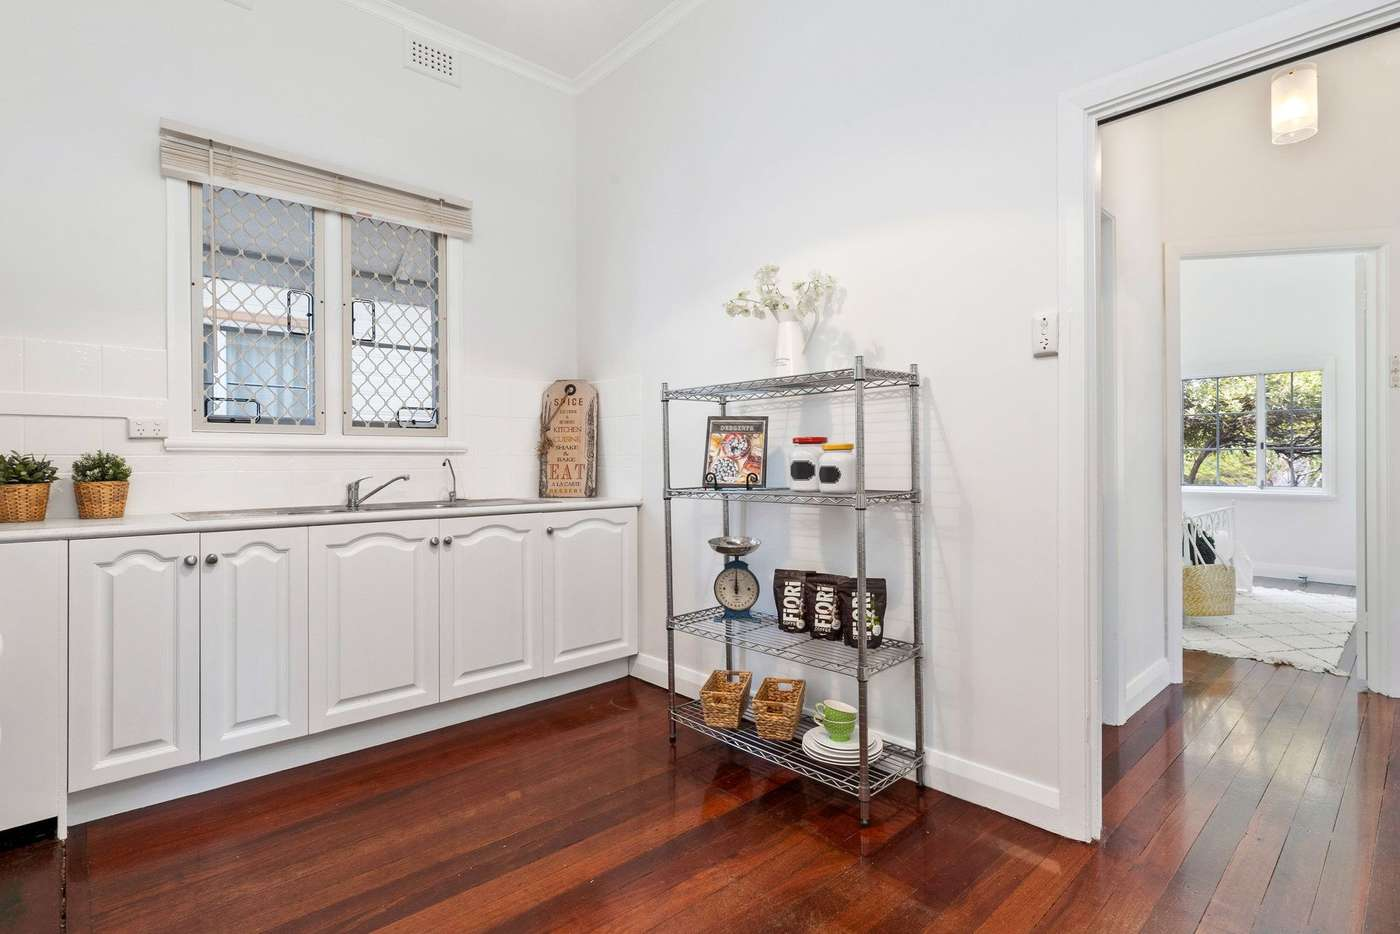 Sixth view of Homely house listing, 118 Aberdare Road, Shenton Park WA 6008